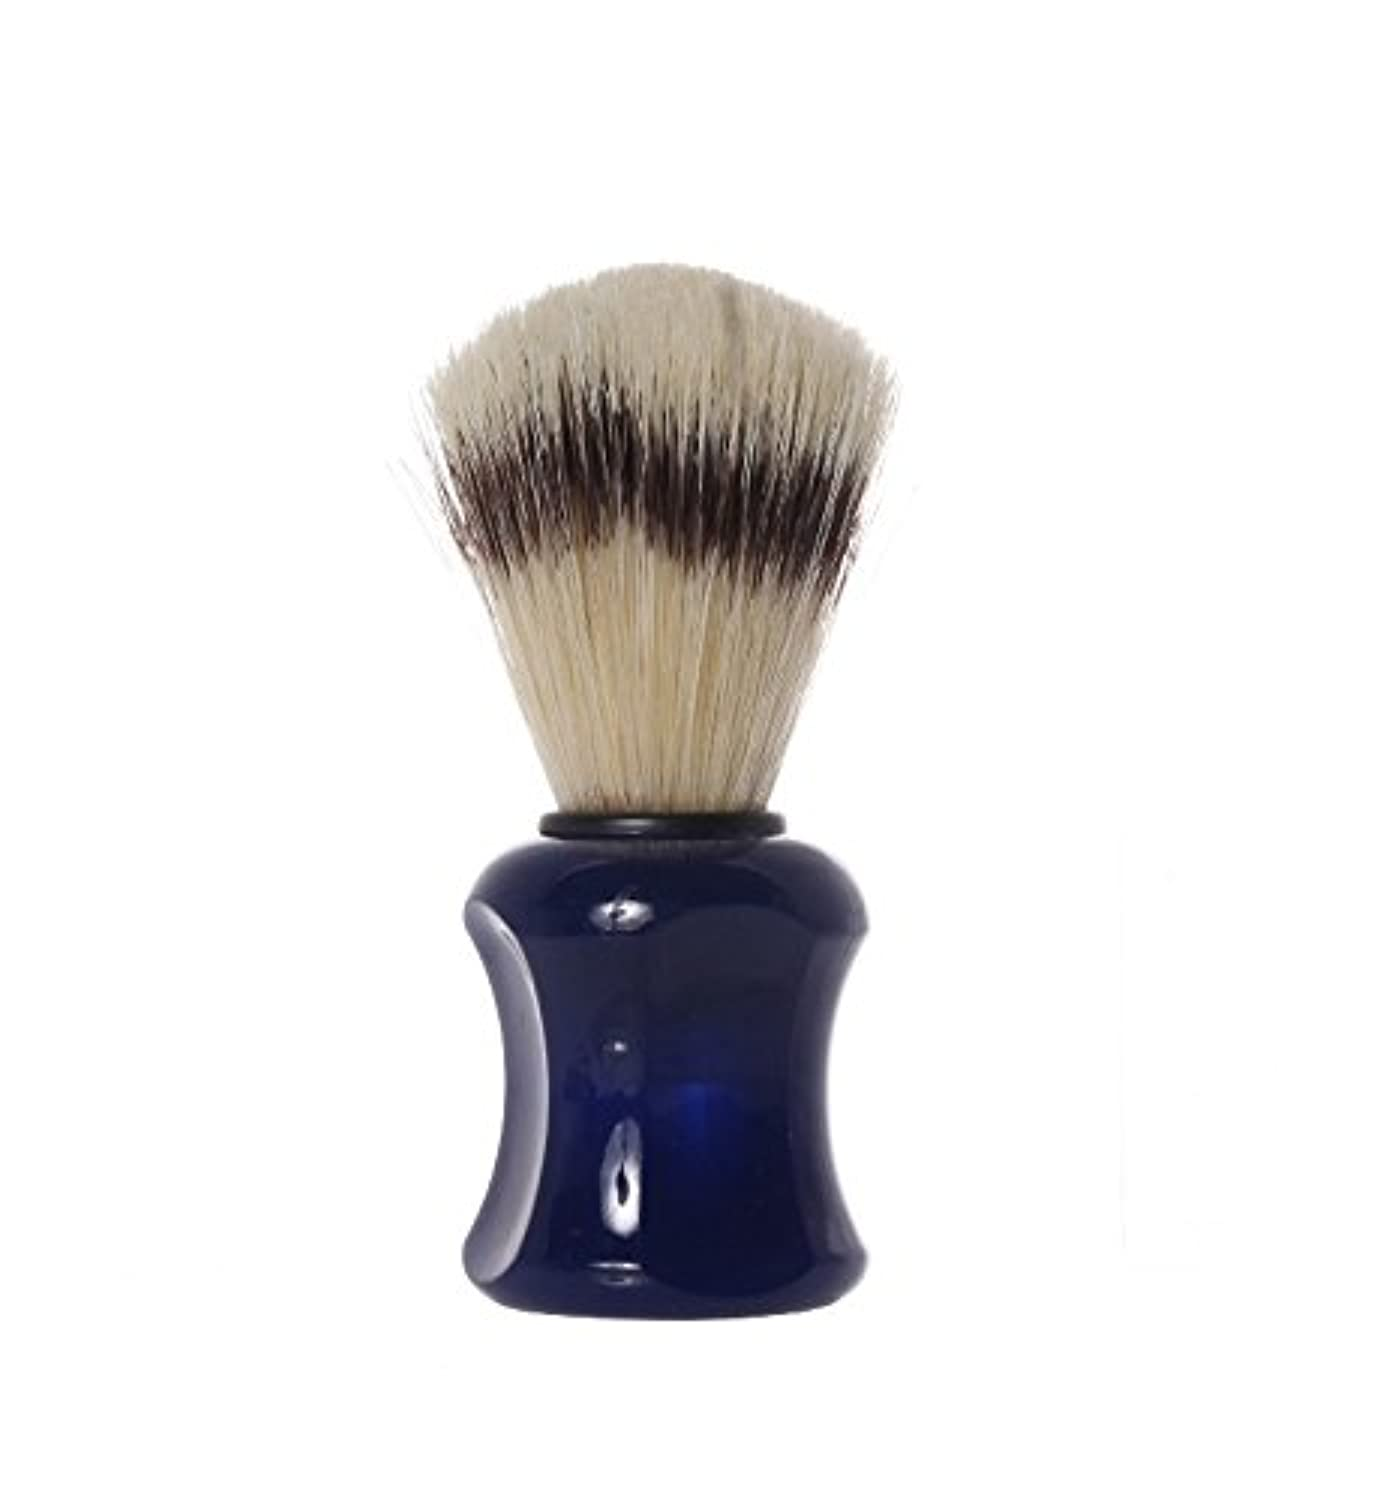 Shaving Brush with pig′s bristles, 10,0 cm, blue - Erbe Solingen